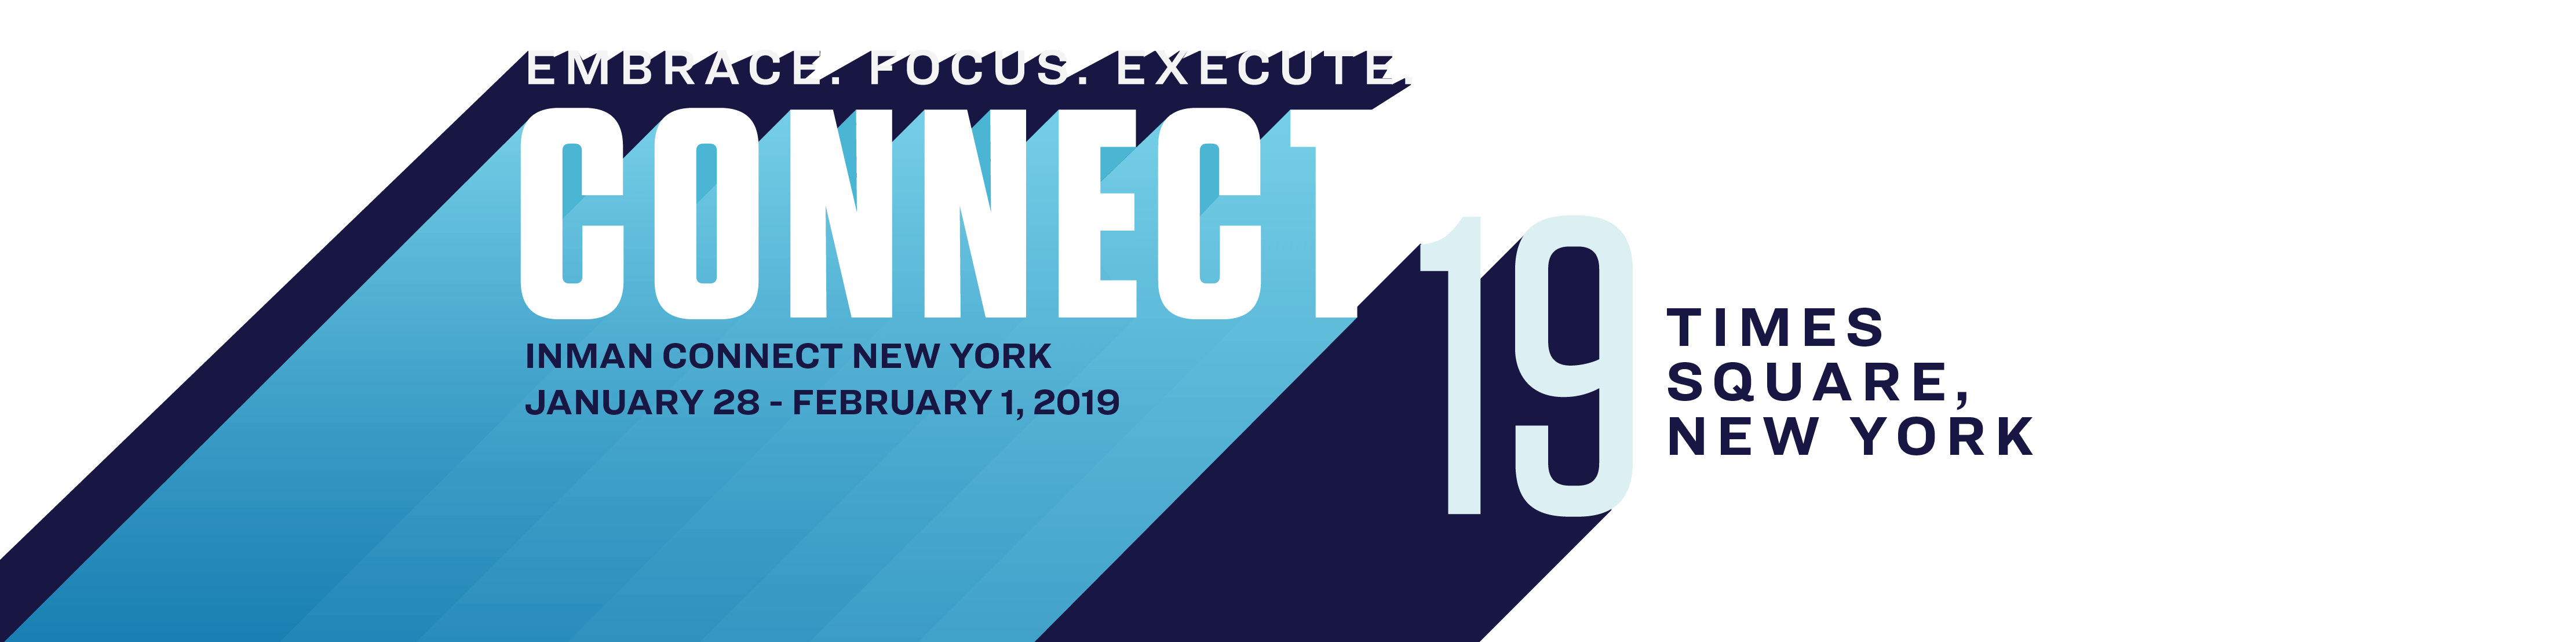 Inman Connect - New York 2019